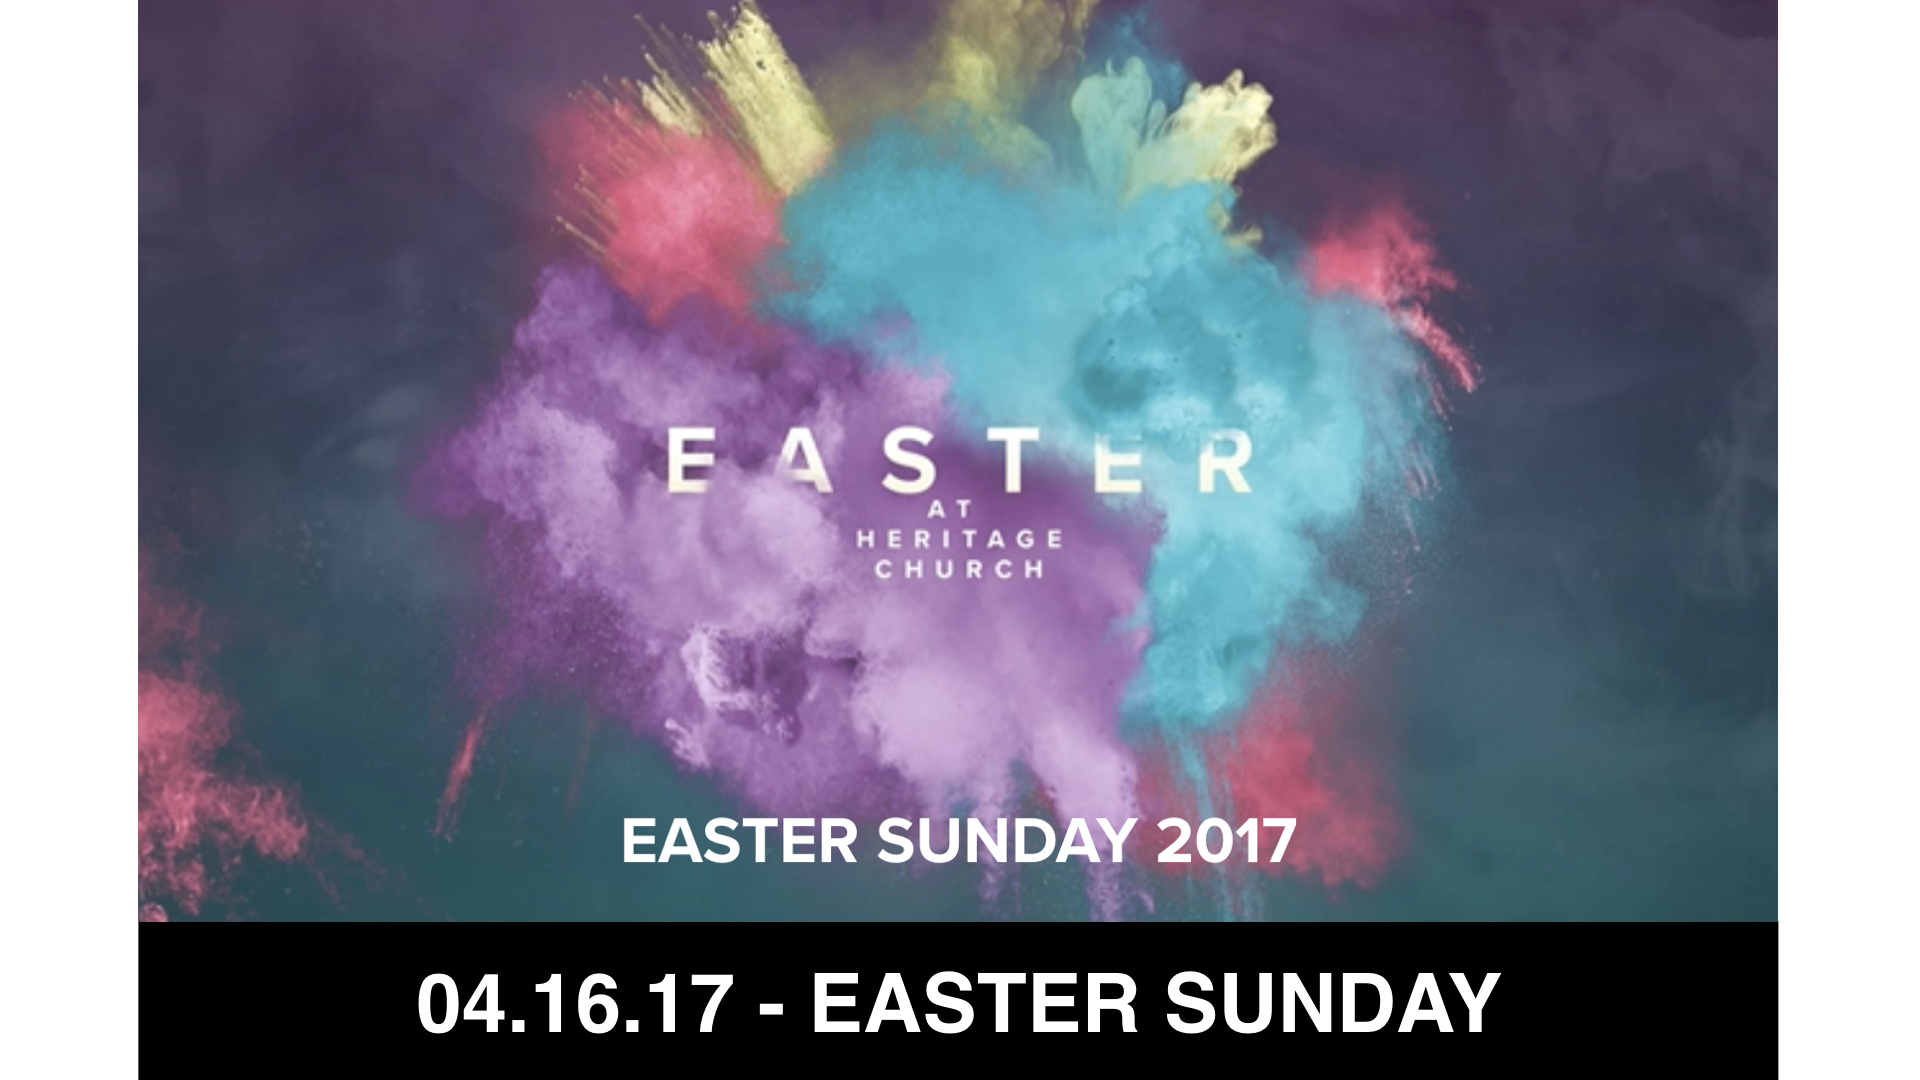 04-16-17 Easter Sunday 2017